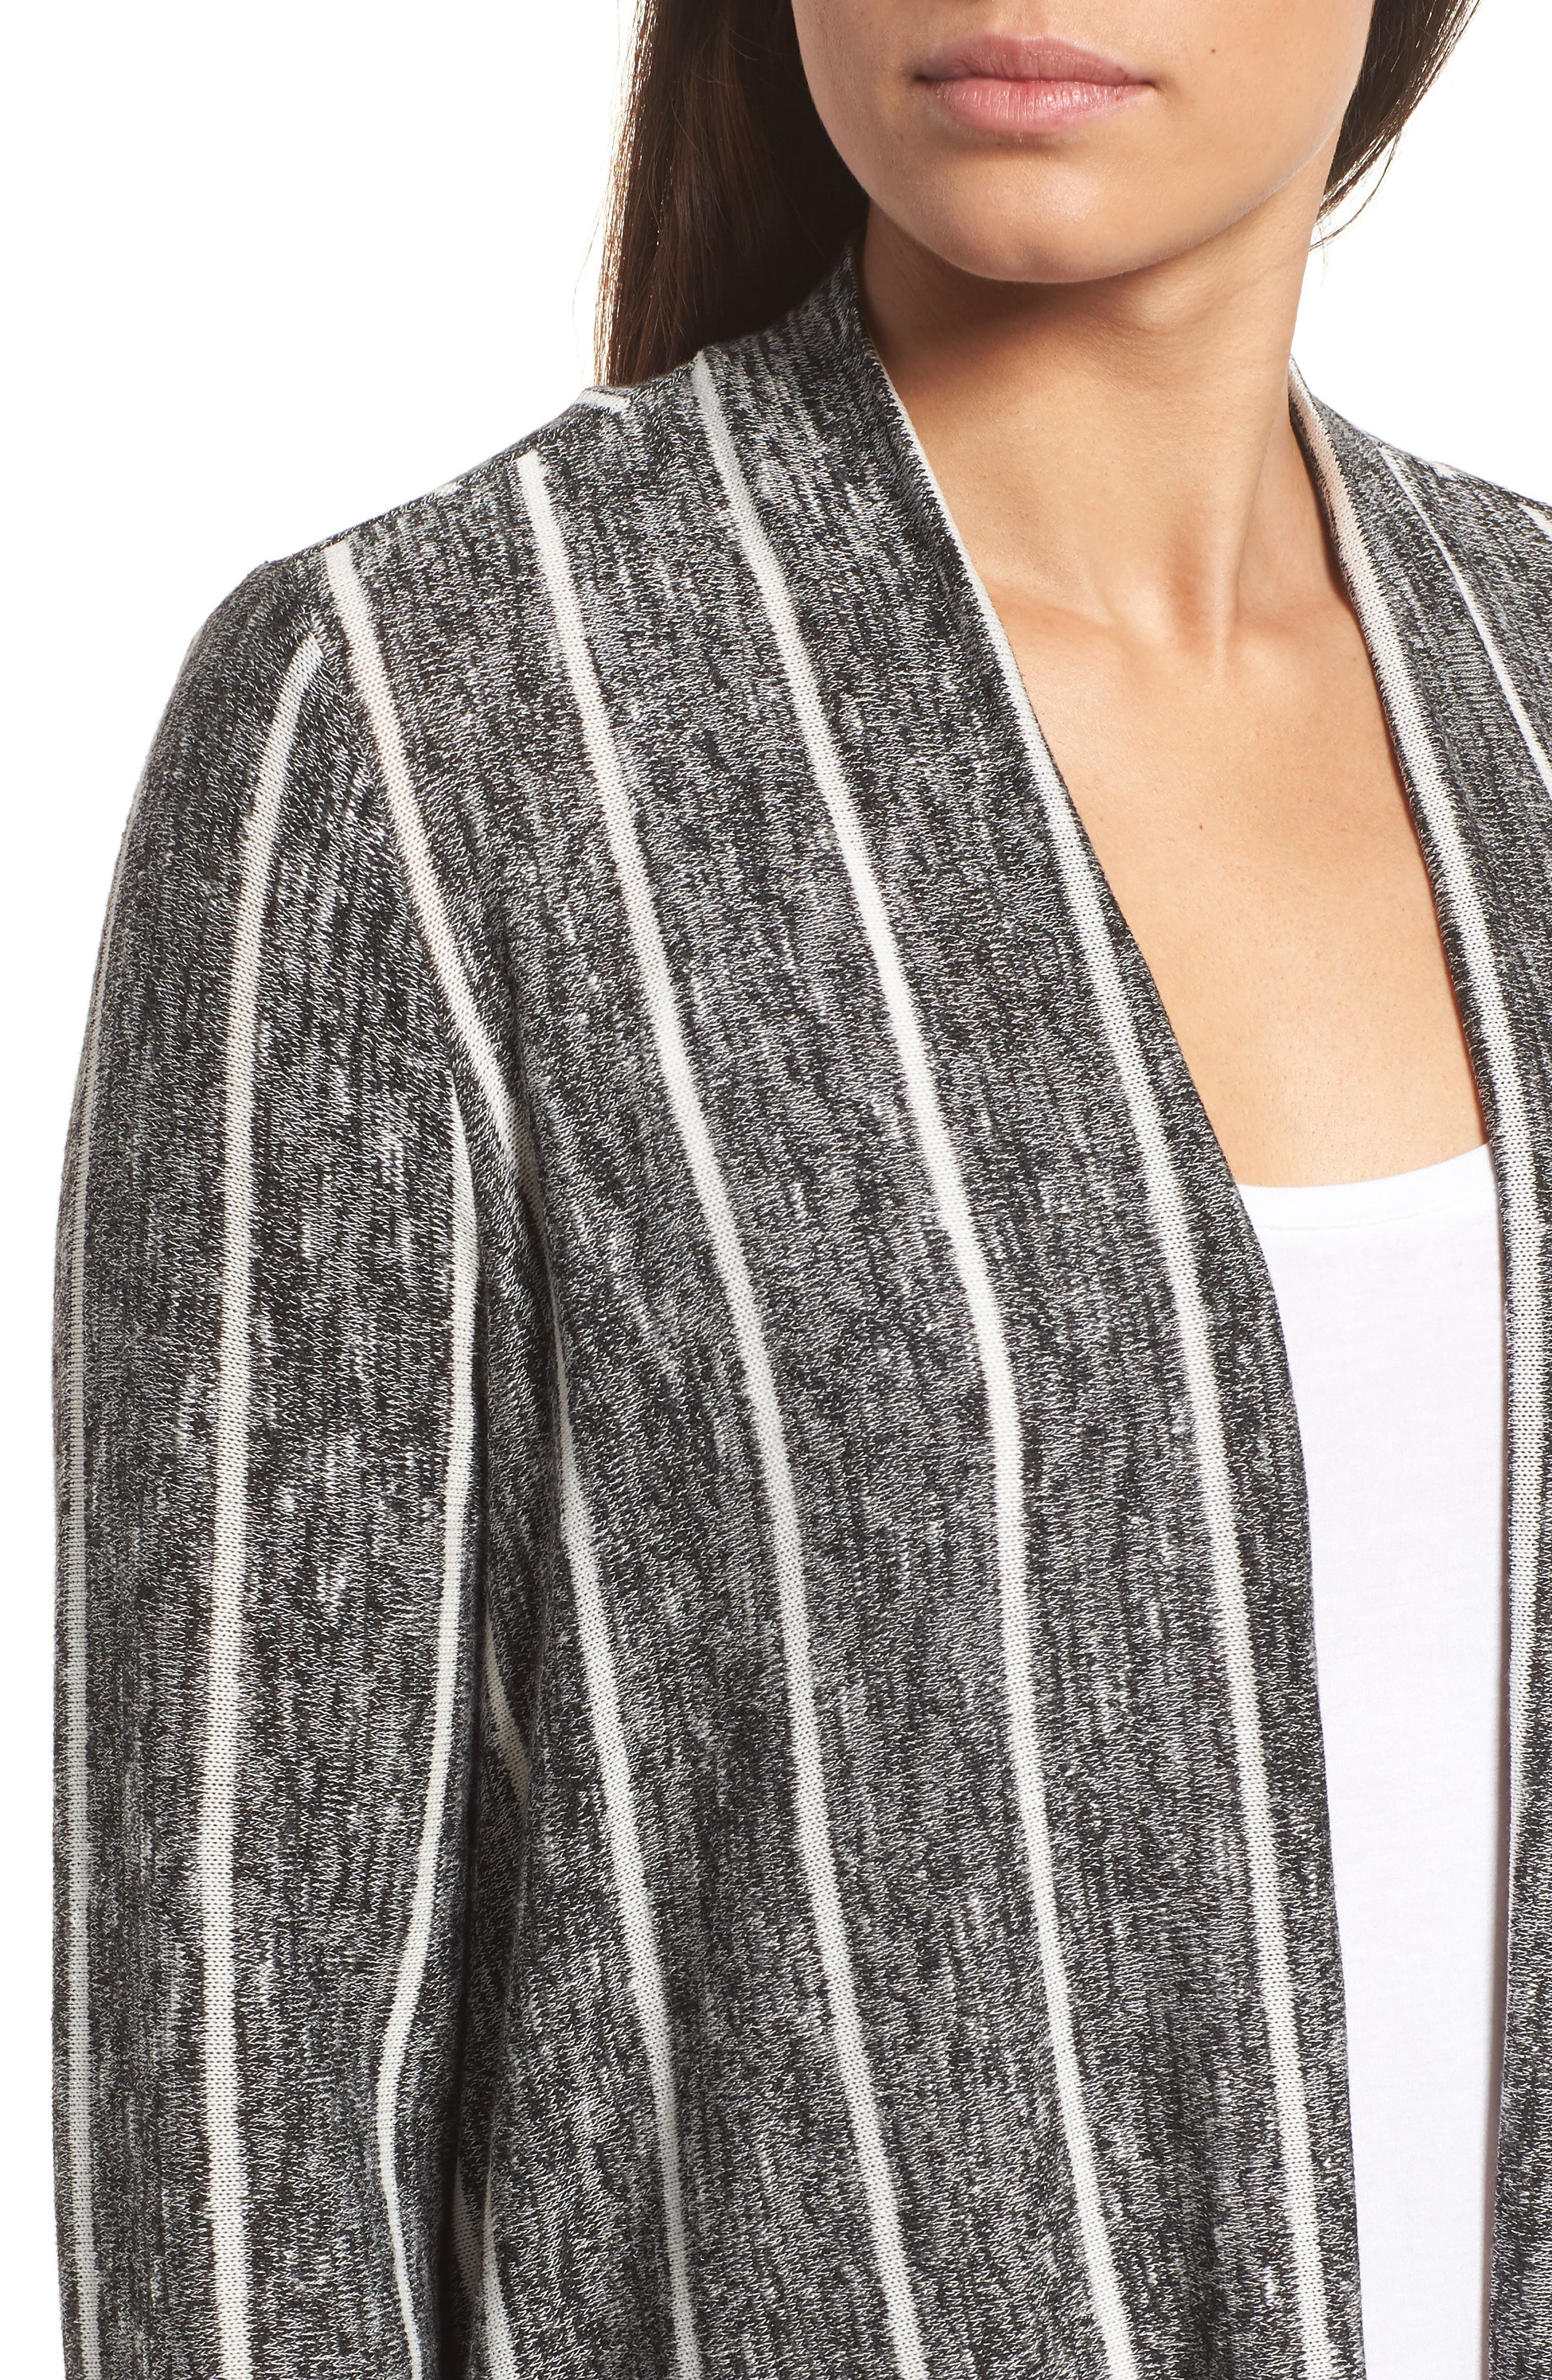 Marled Stripe Open Front Cardigan,                             Alternate thumbnail 4, color,                             060-Rich Black